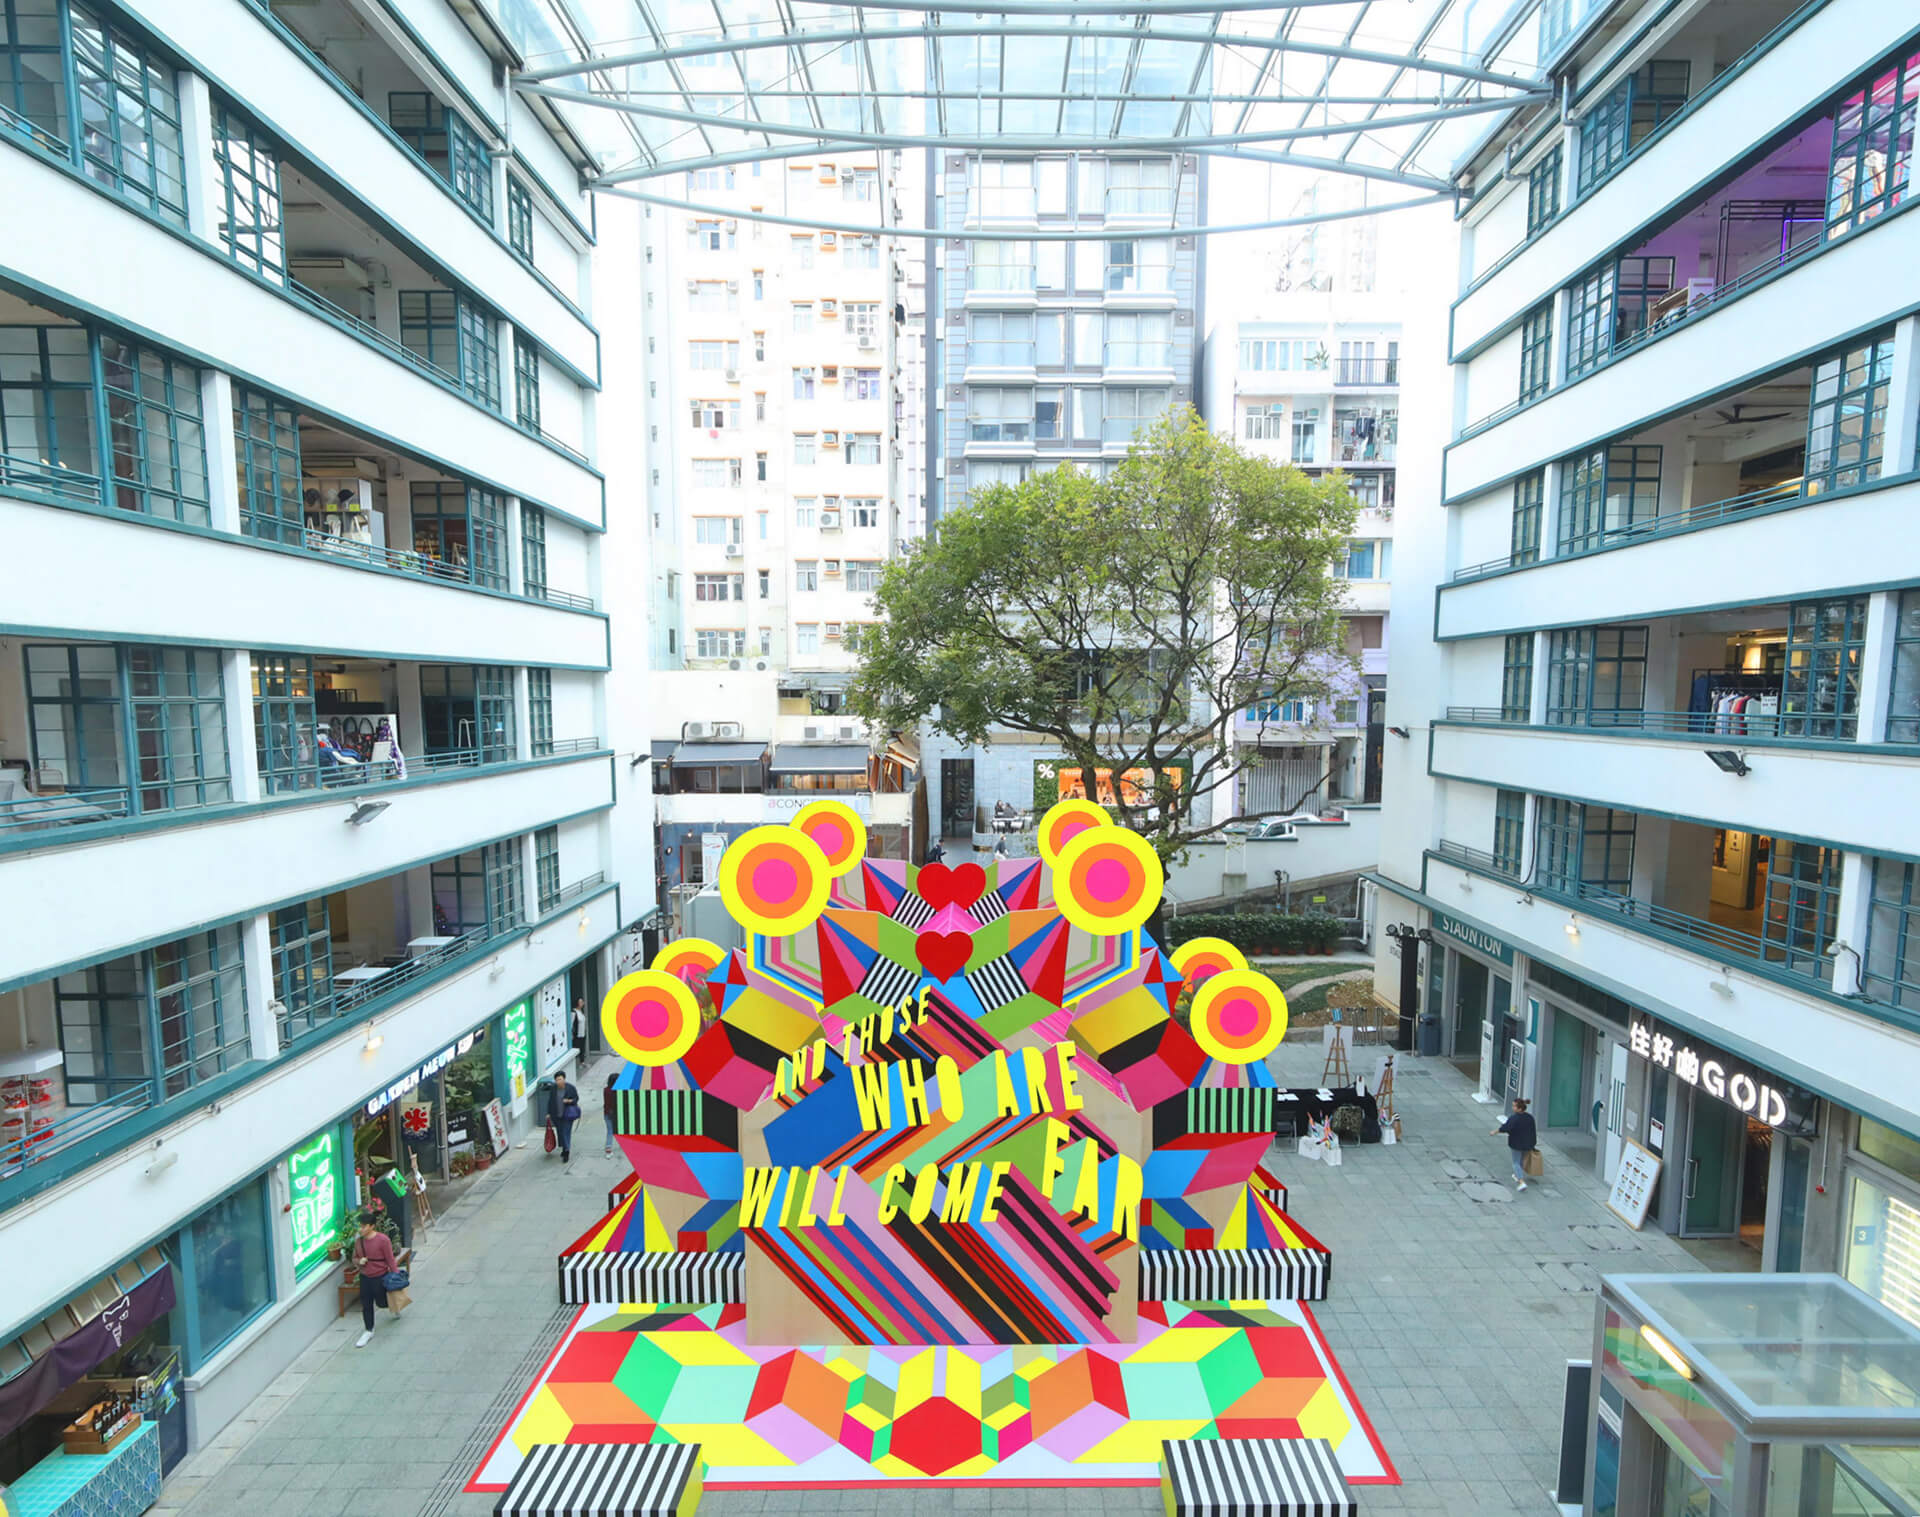 The Make Happy installation in an urban context in central Hong Kong | Morag Myerscough | Women in Design 2020 + | STIRworld